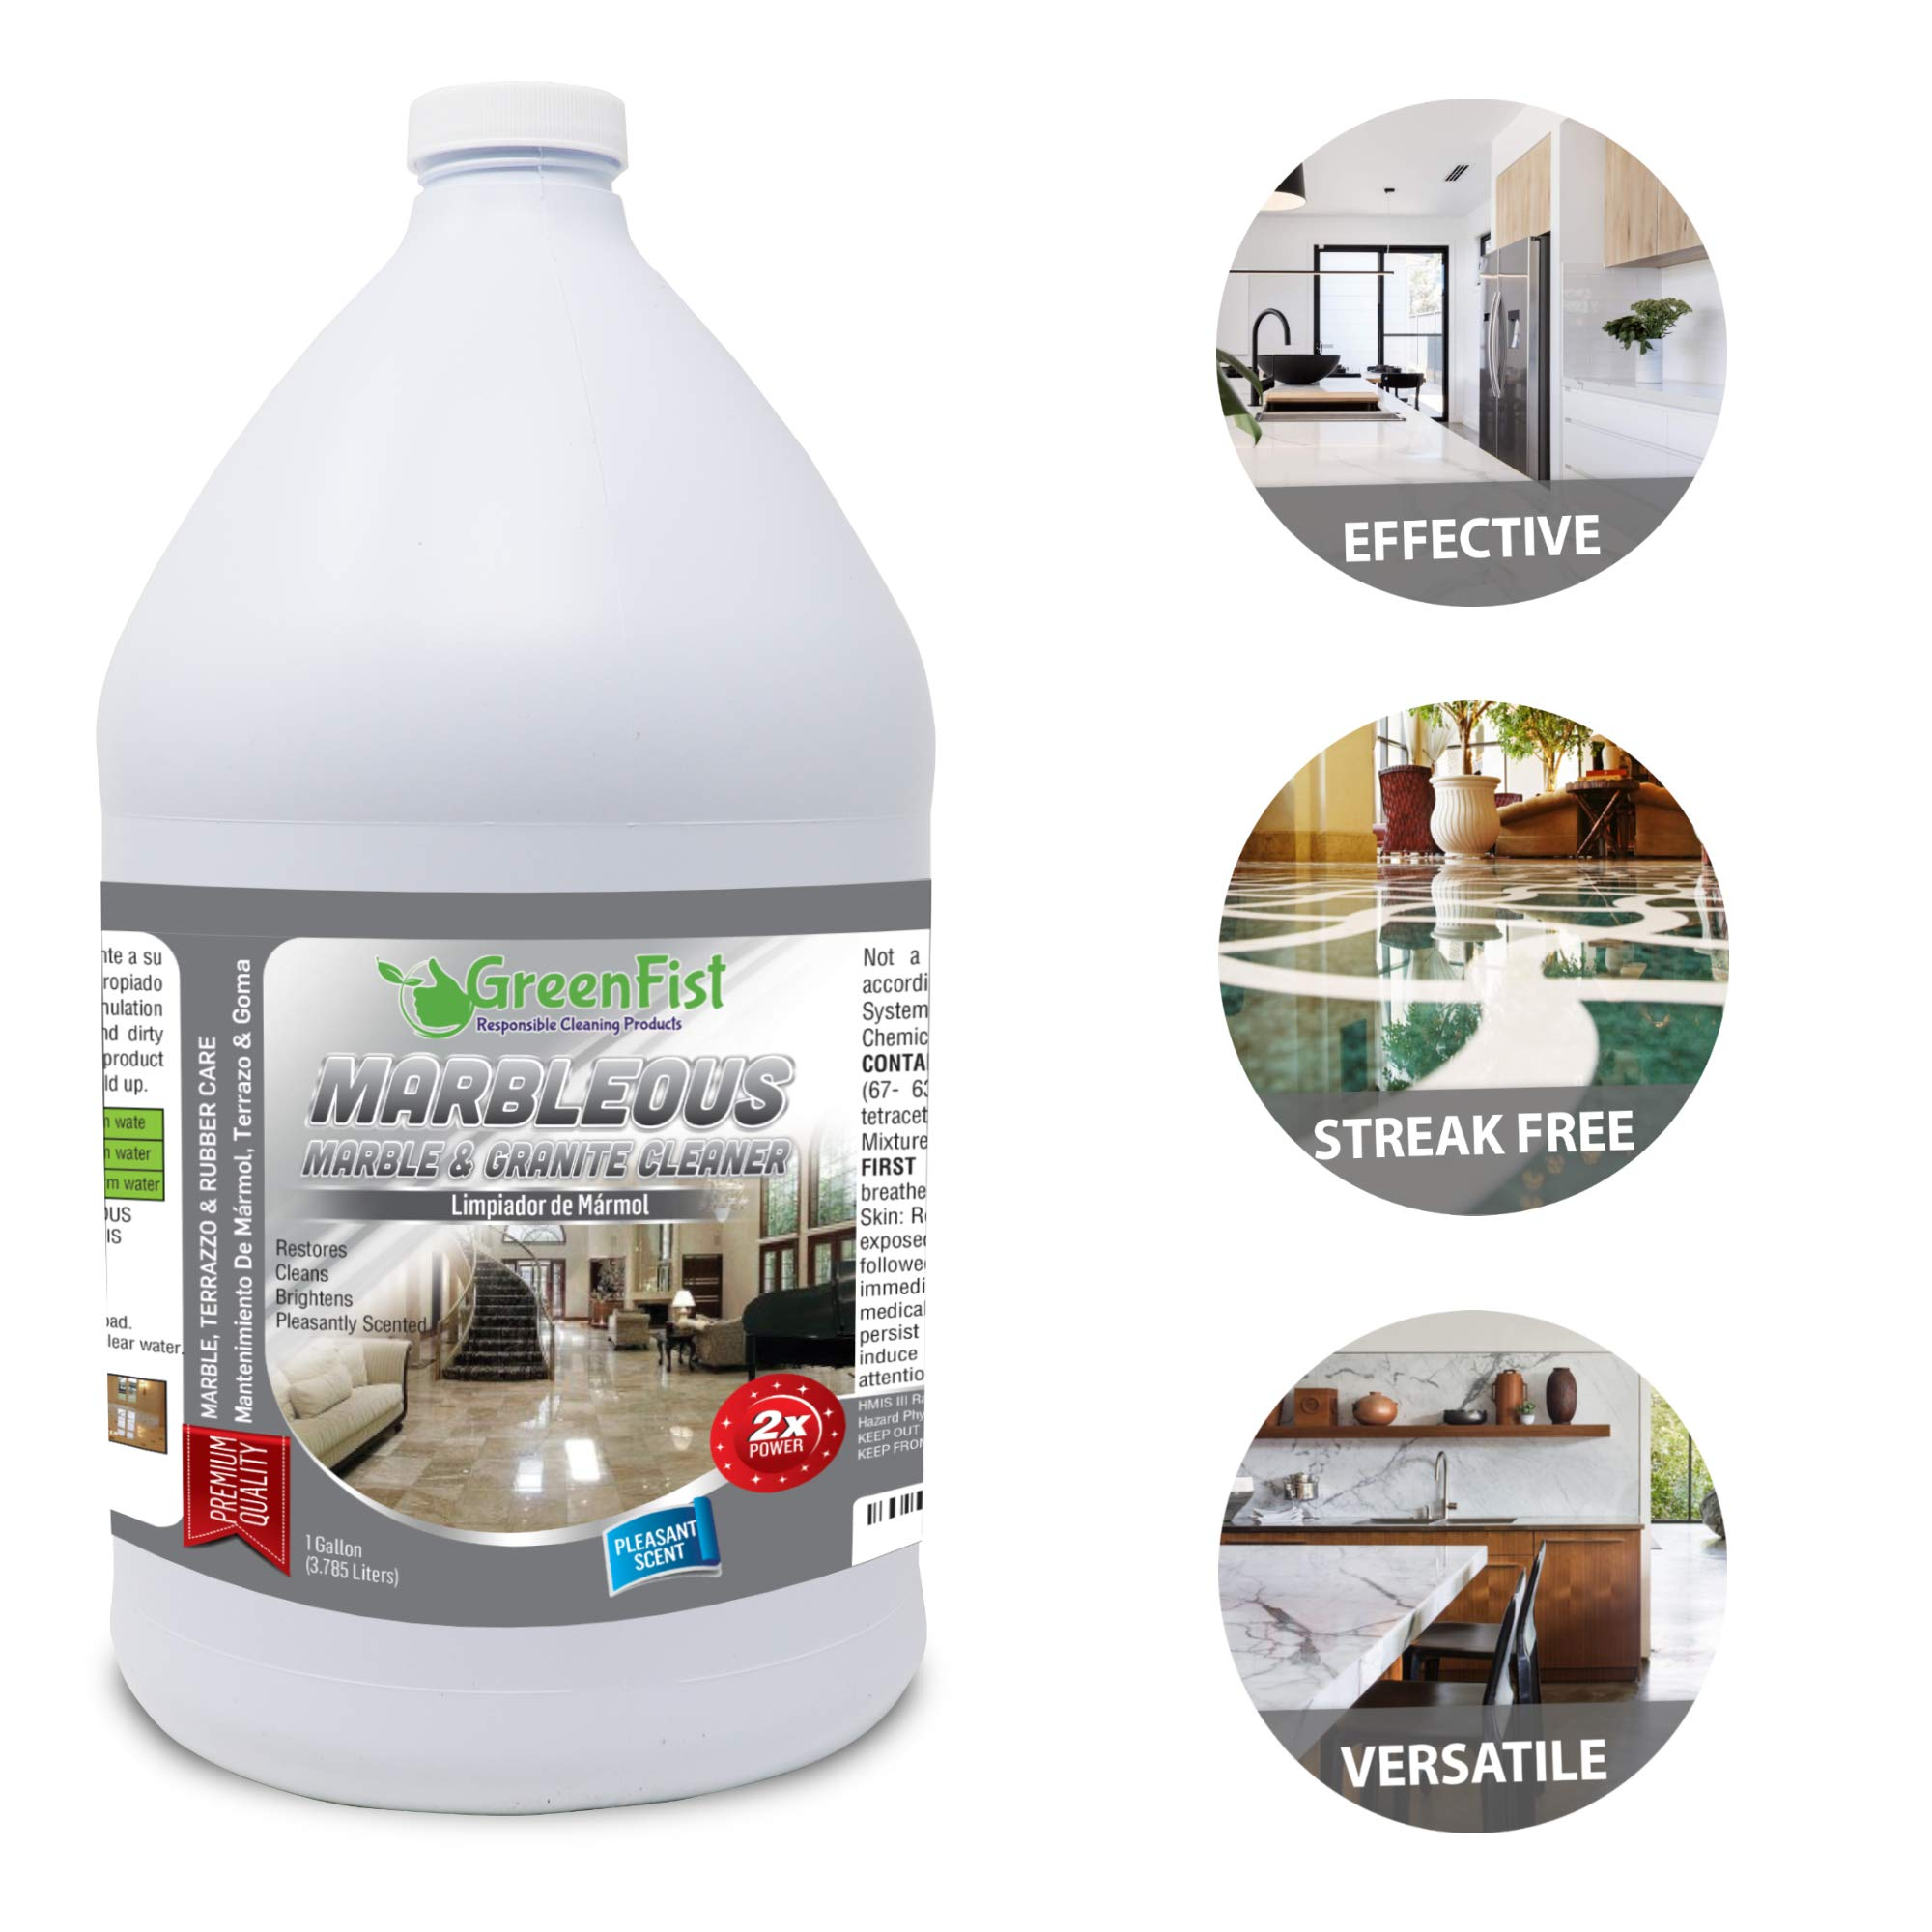 GreenFist Marbleous Marble Cleaner and Other Stone Surfaces Brightener & Restorer [Tile,Countertop,Porcelain,Lime-Stone,Ceramic,Granite,Brick,Vinyl] (1 Gallon) by GreenFist (Image #3)